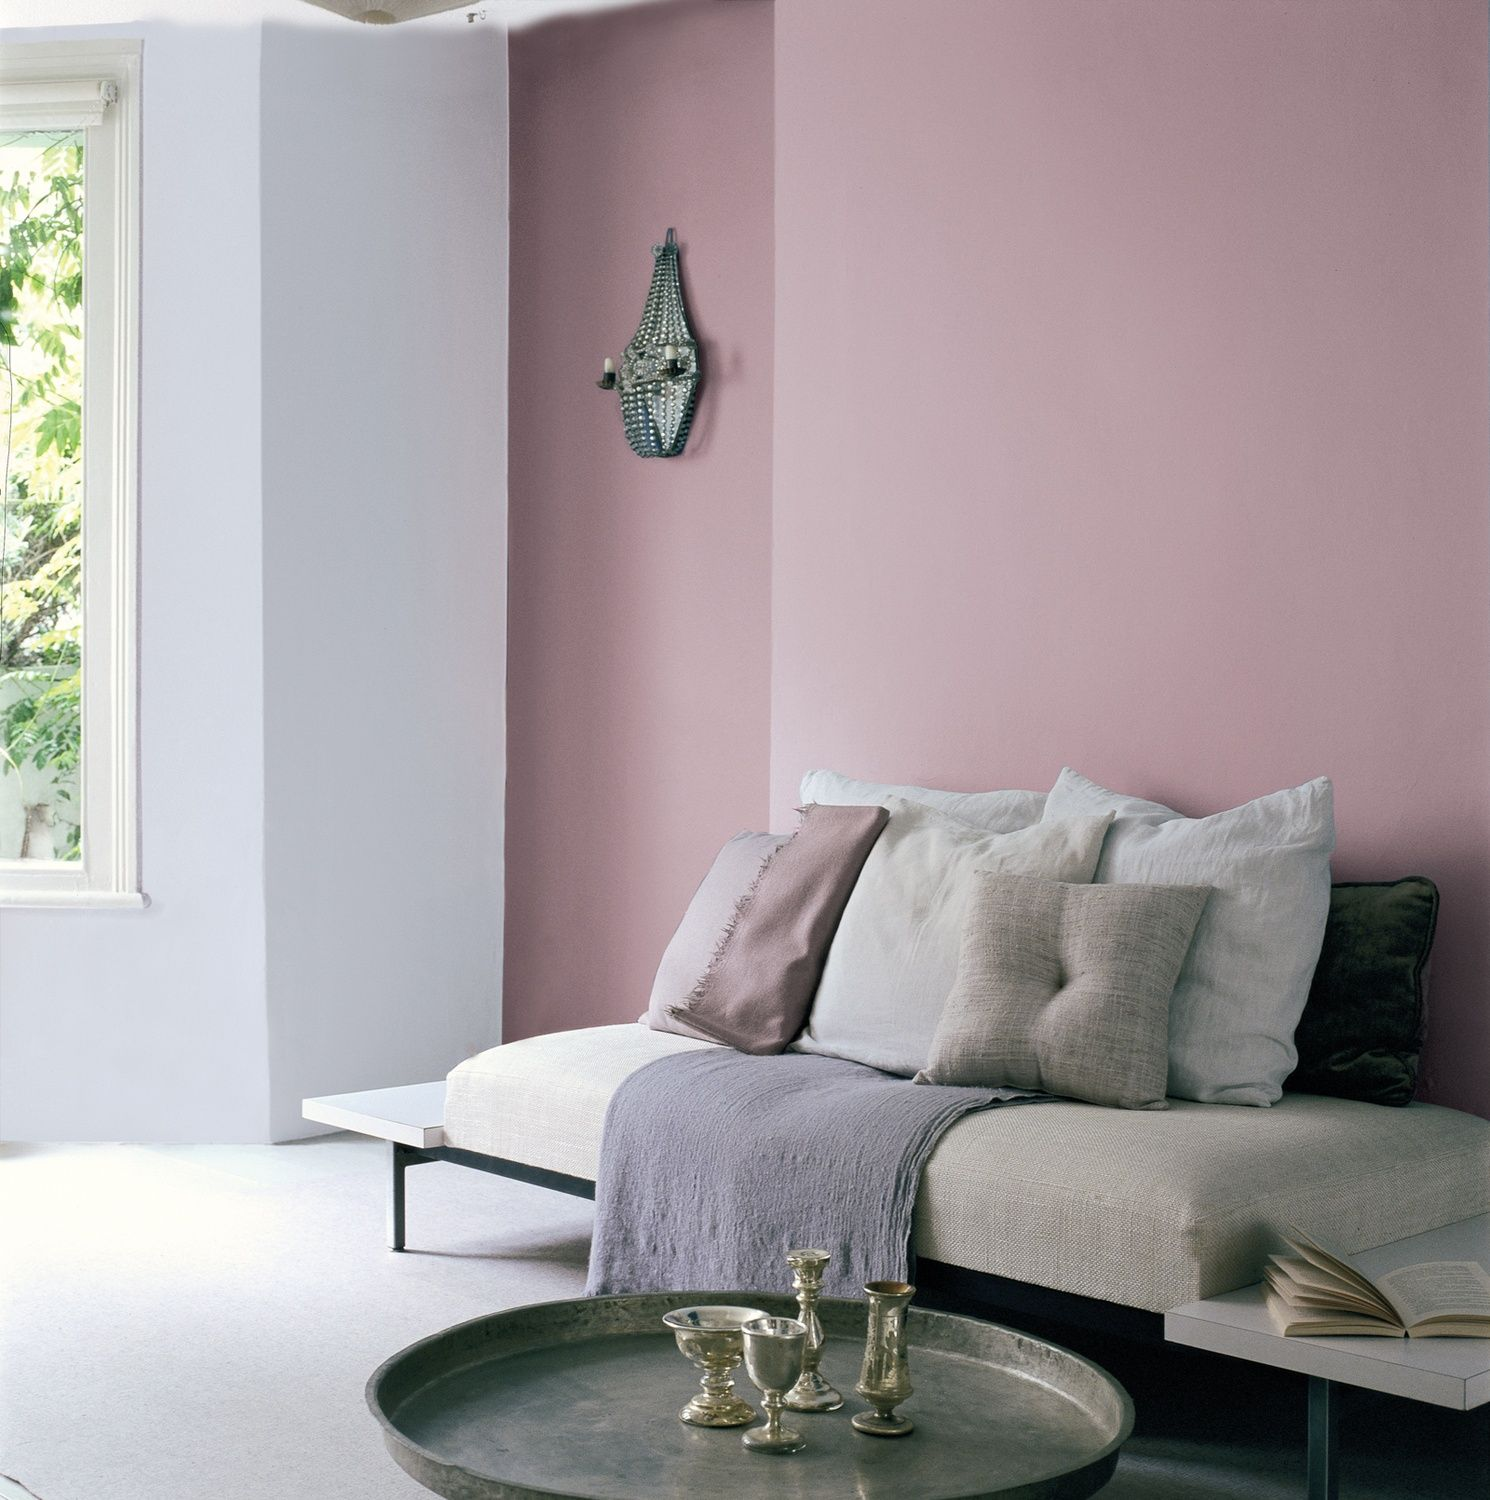 Flexa Kleuren Muted Mauves And Warm Lavendars For The Living Room Mixed With